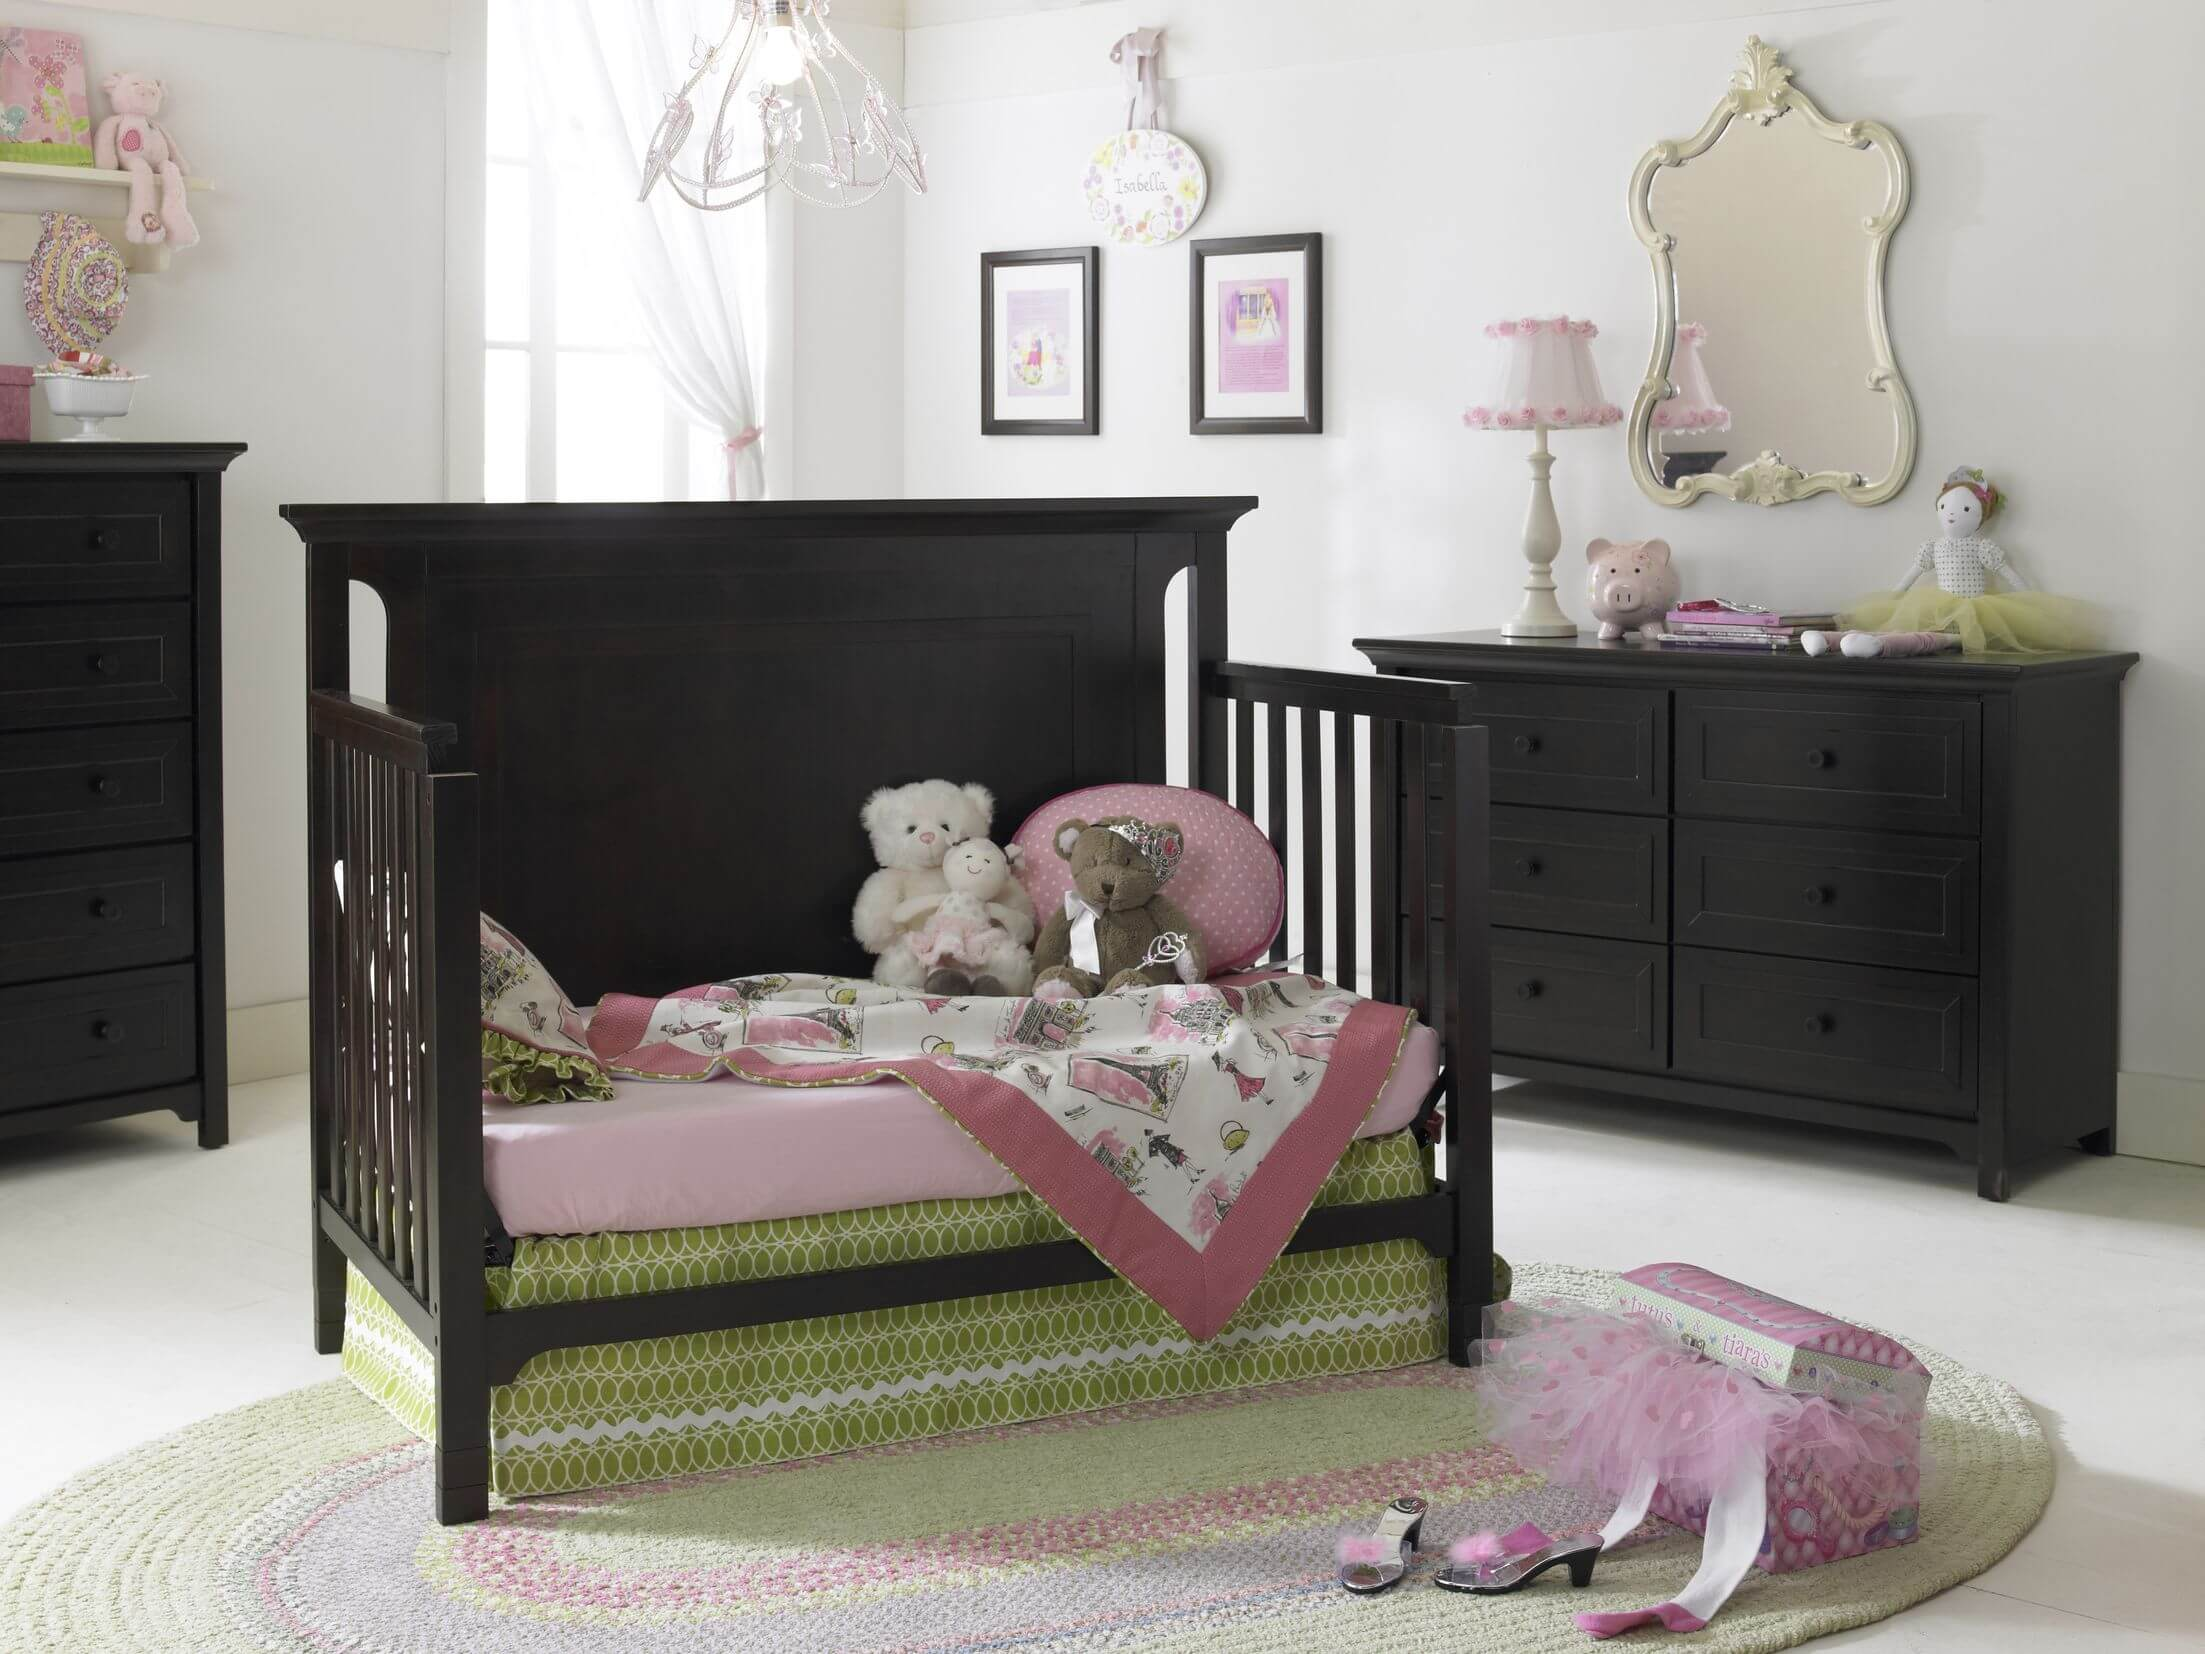 18 baby girl nursery ideas, themes & designs (pictures)